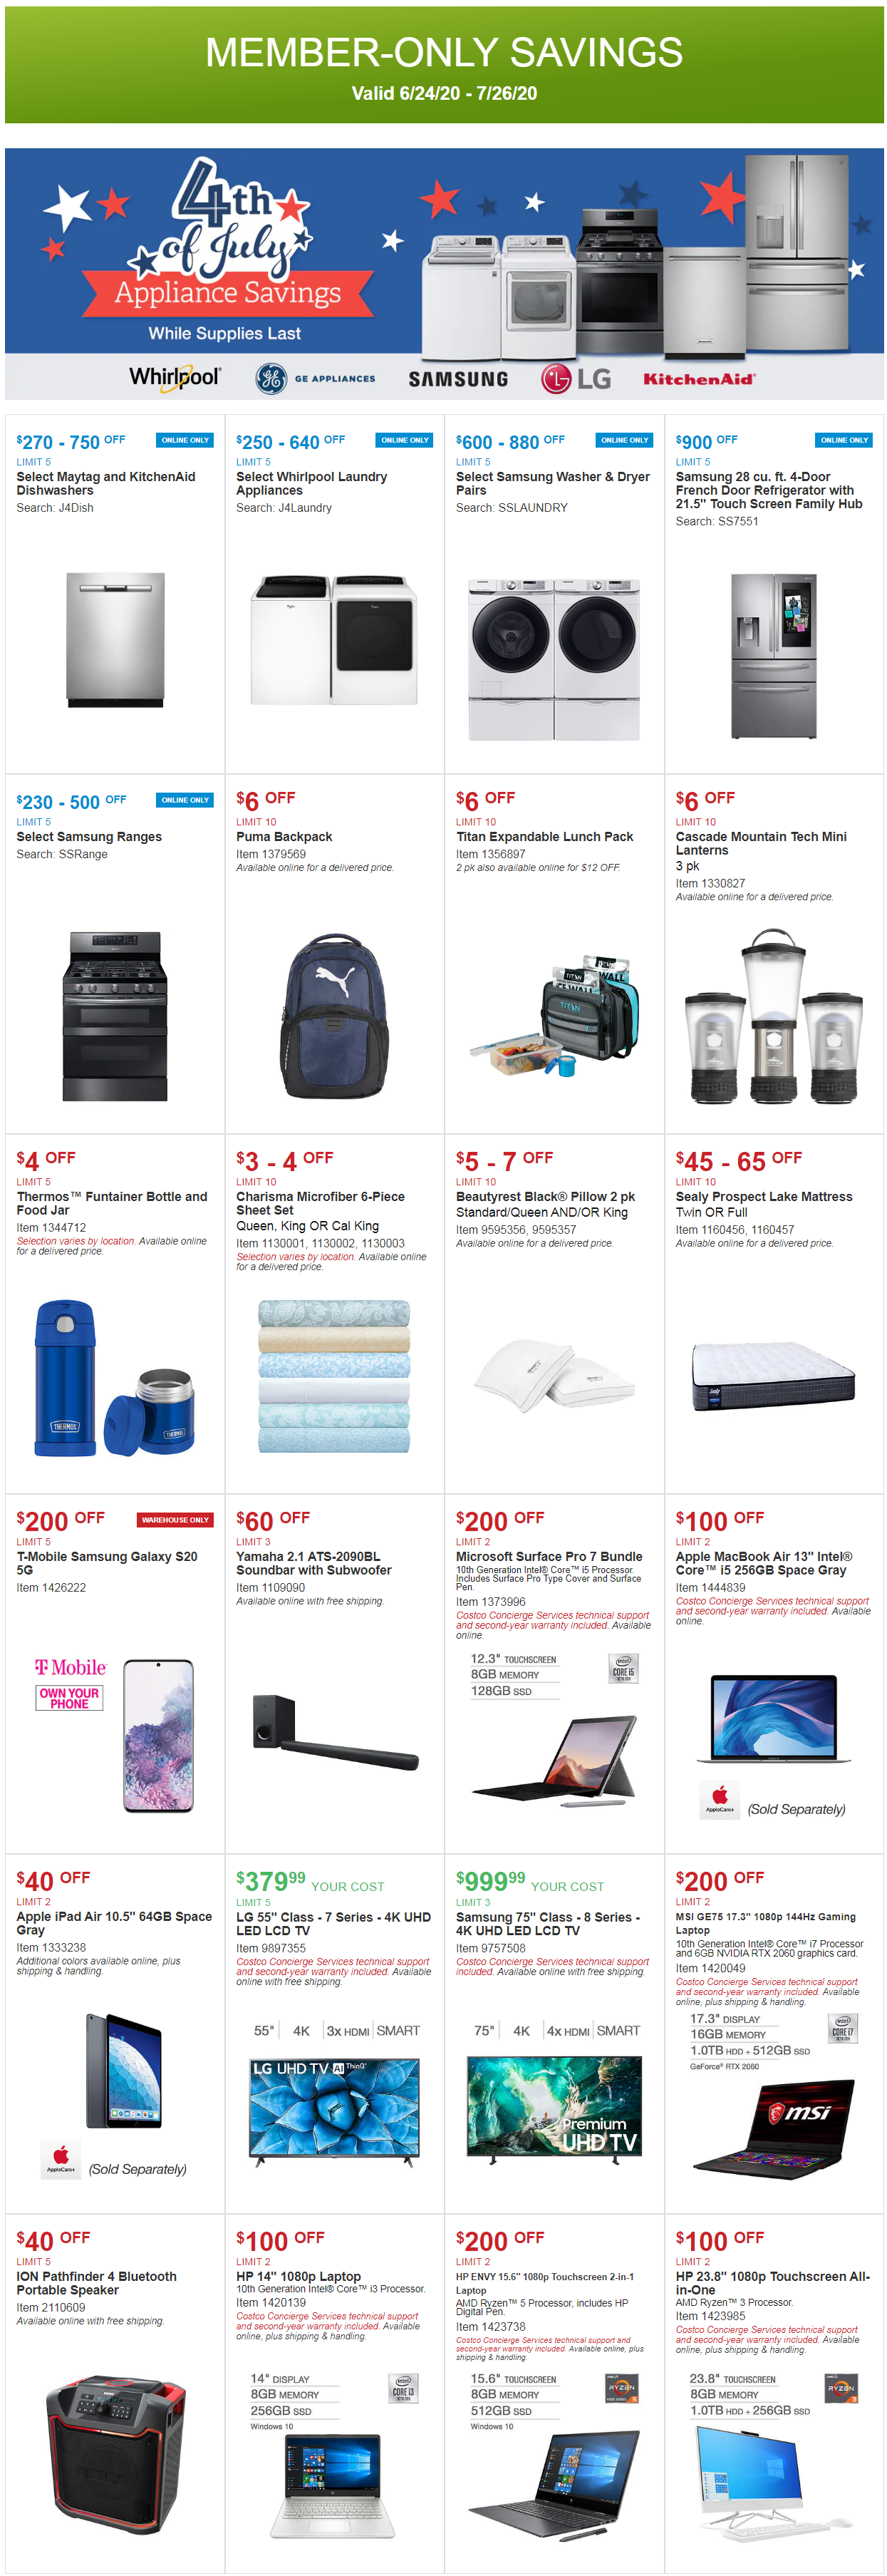 Costco Coupon Offers June 24 - July 26, 2020